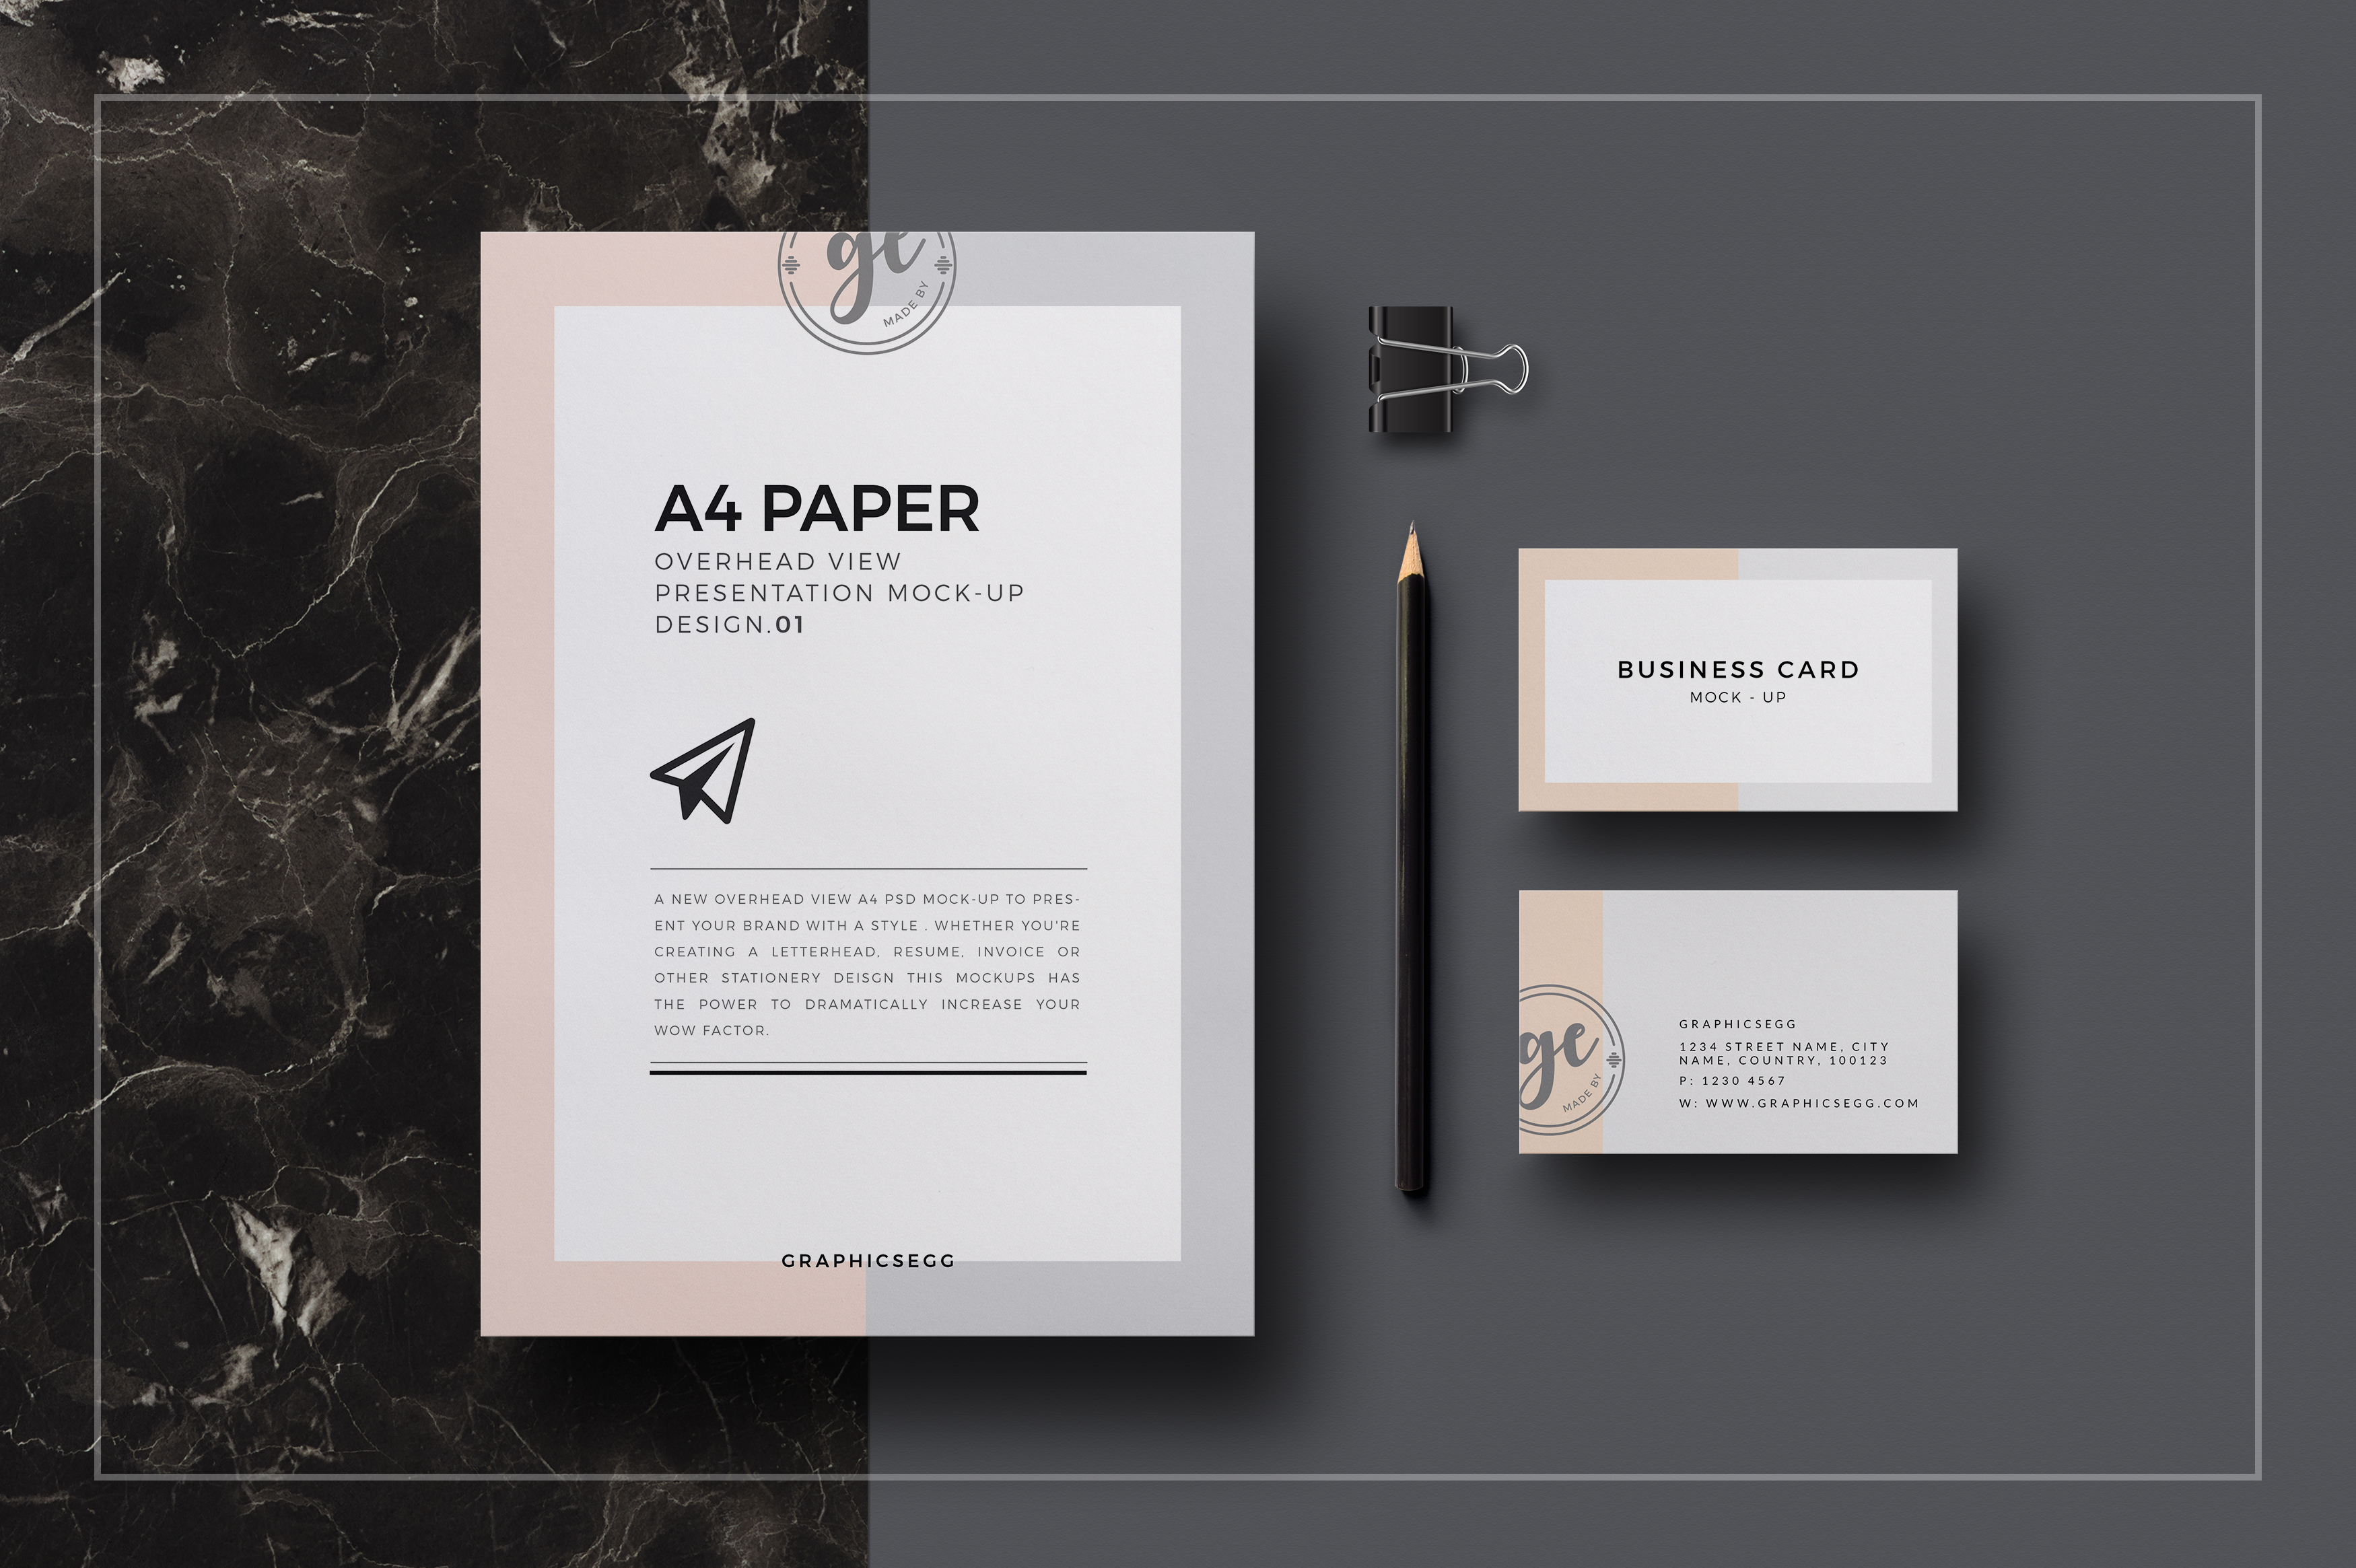 A4 paper overhead view mockup free psd on Behance